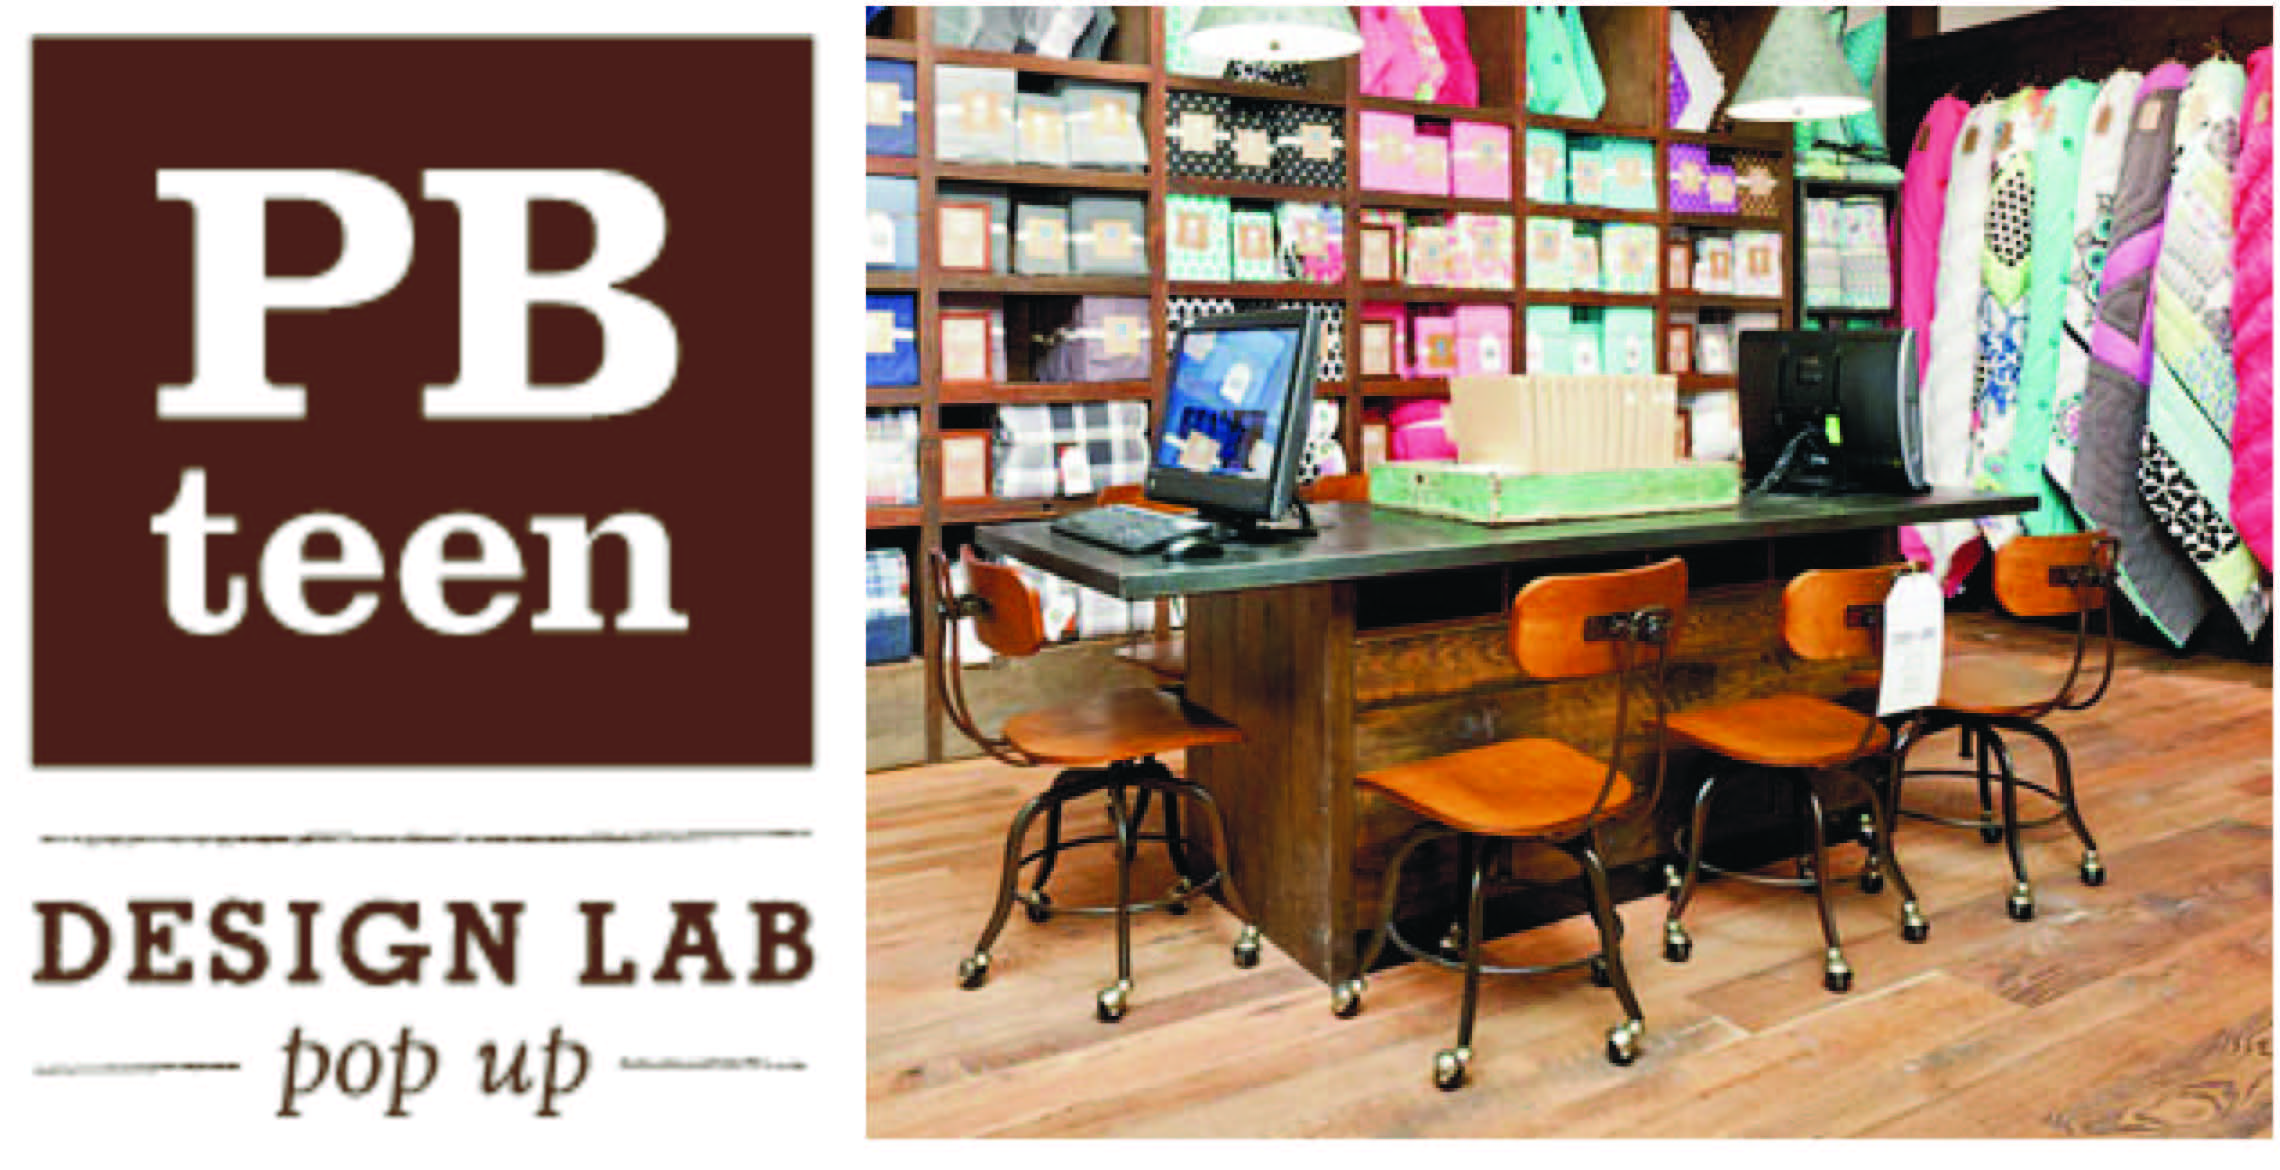 PBteen, The Spin Off Brand From Pottery Barn And Pottery Barn Kids, Offers  Cool Room Decor, Furniture And Gifts Specifically Designed For Tweens And  Teens.